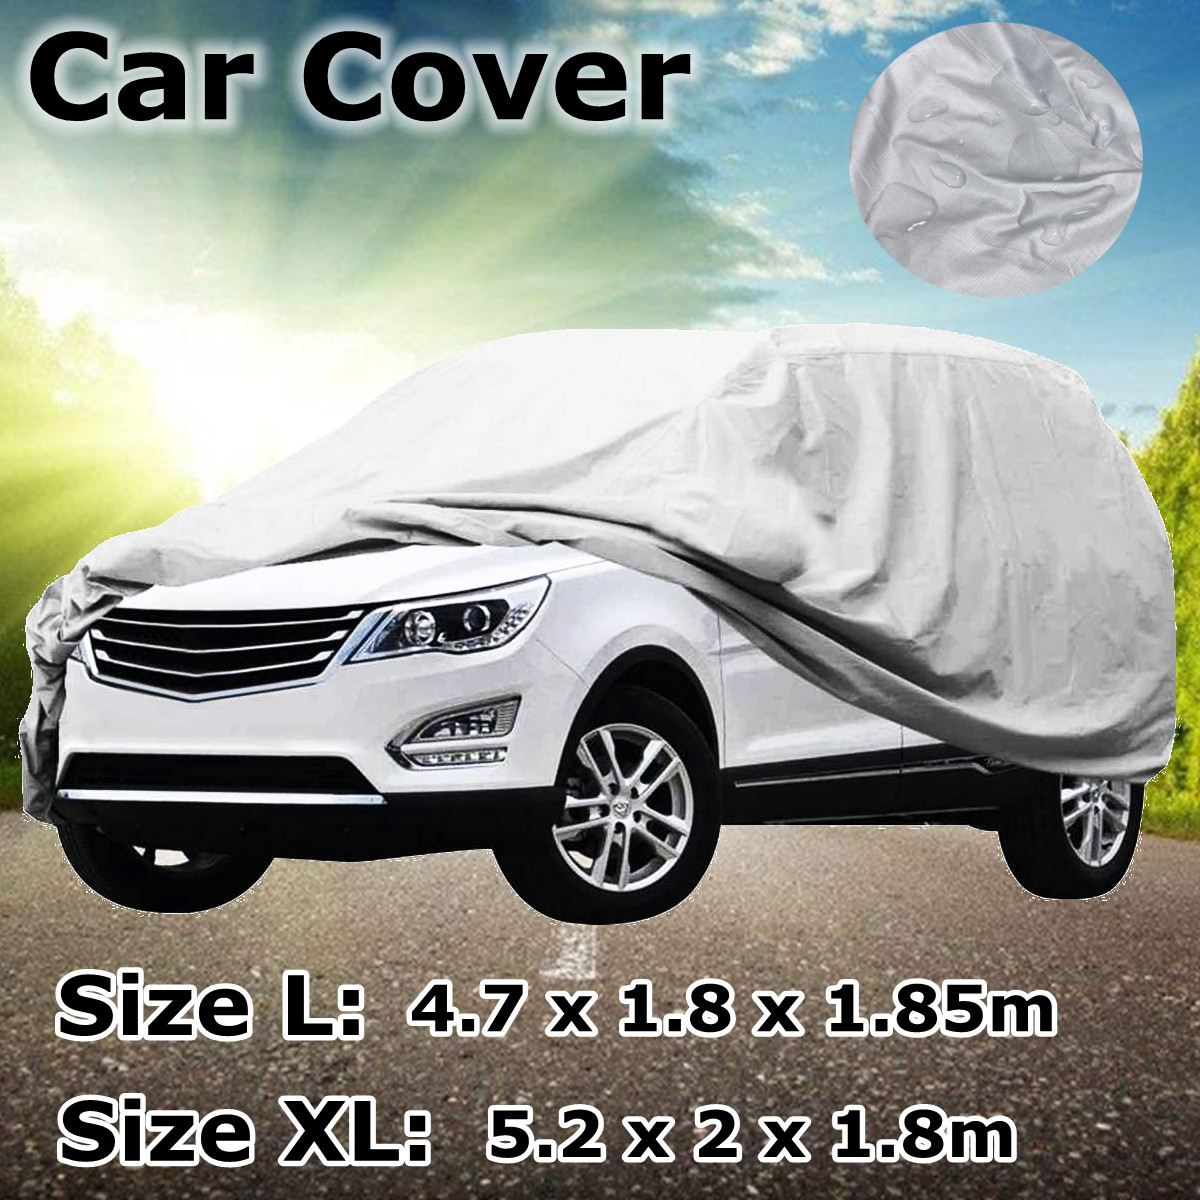 L/XL Size Universal Car Cover SUV Full Car Covers Snow Ice Sun Rain Resistant Protection Waterproof Dustproof Outdoor Indoor